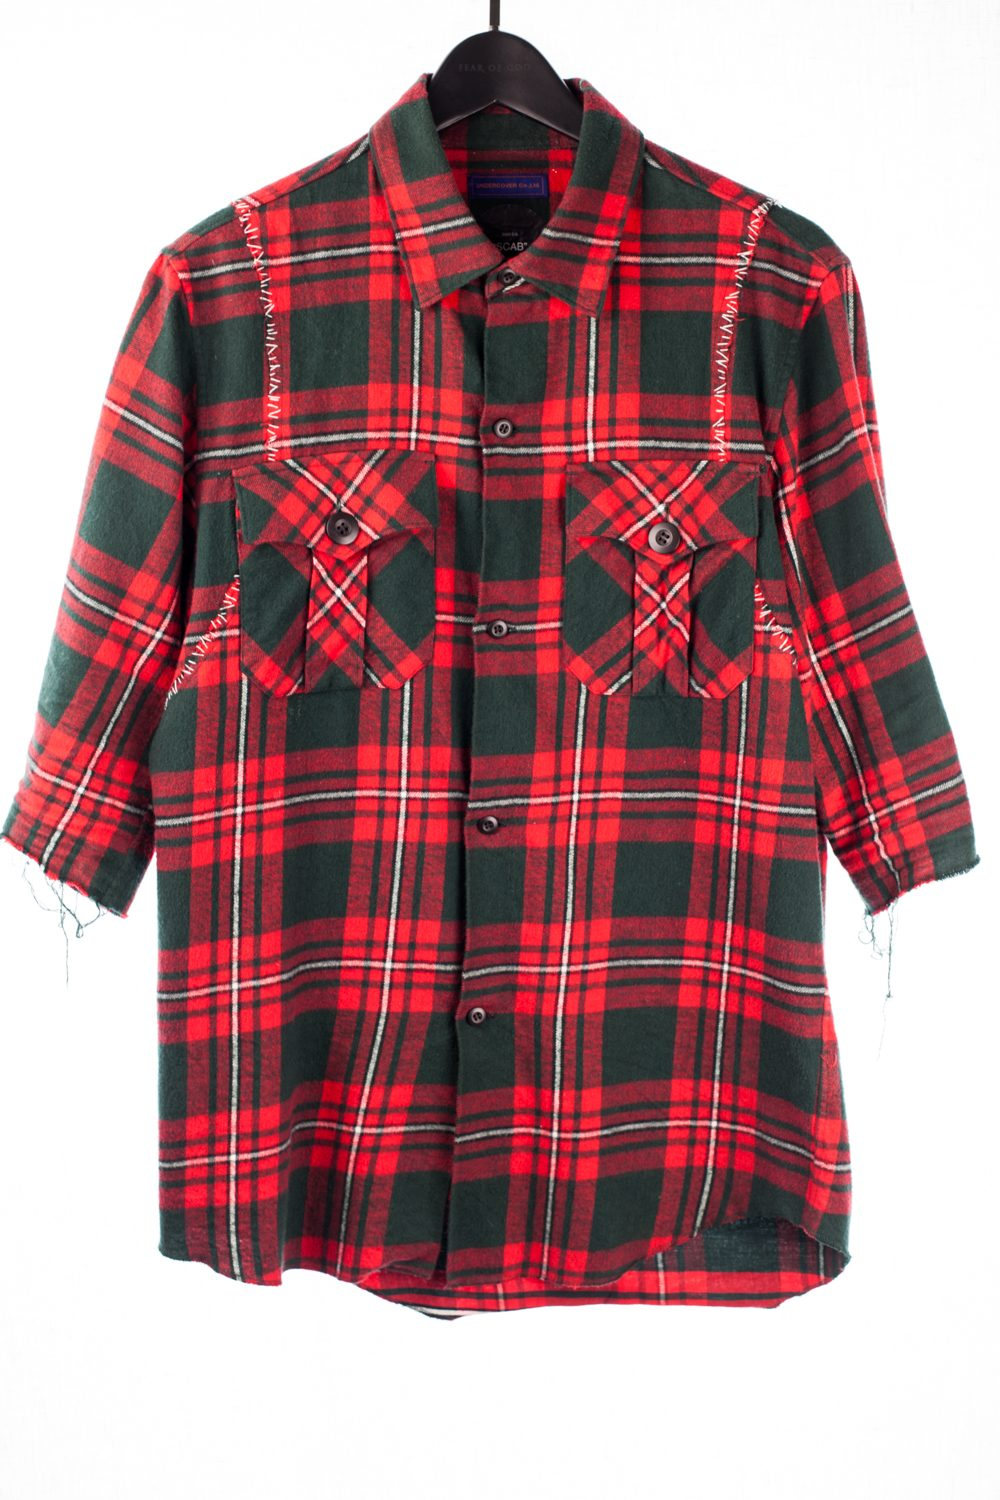 """SS16 """"Scab"""" Joy Division """"This Is The Way Step Inside"""" Flannel"""